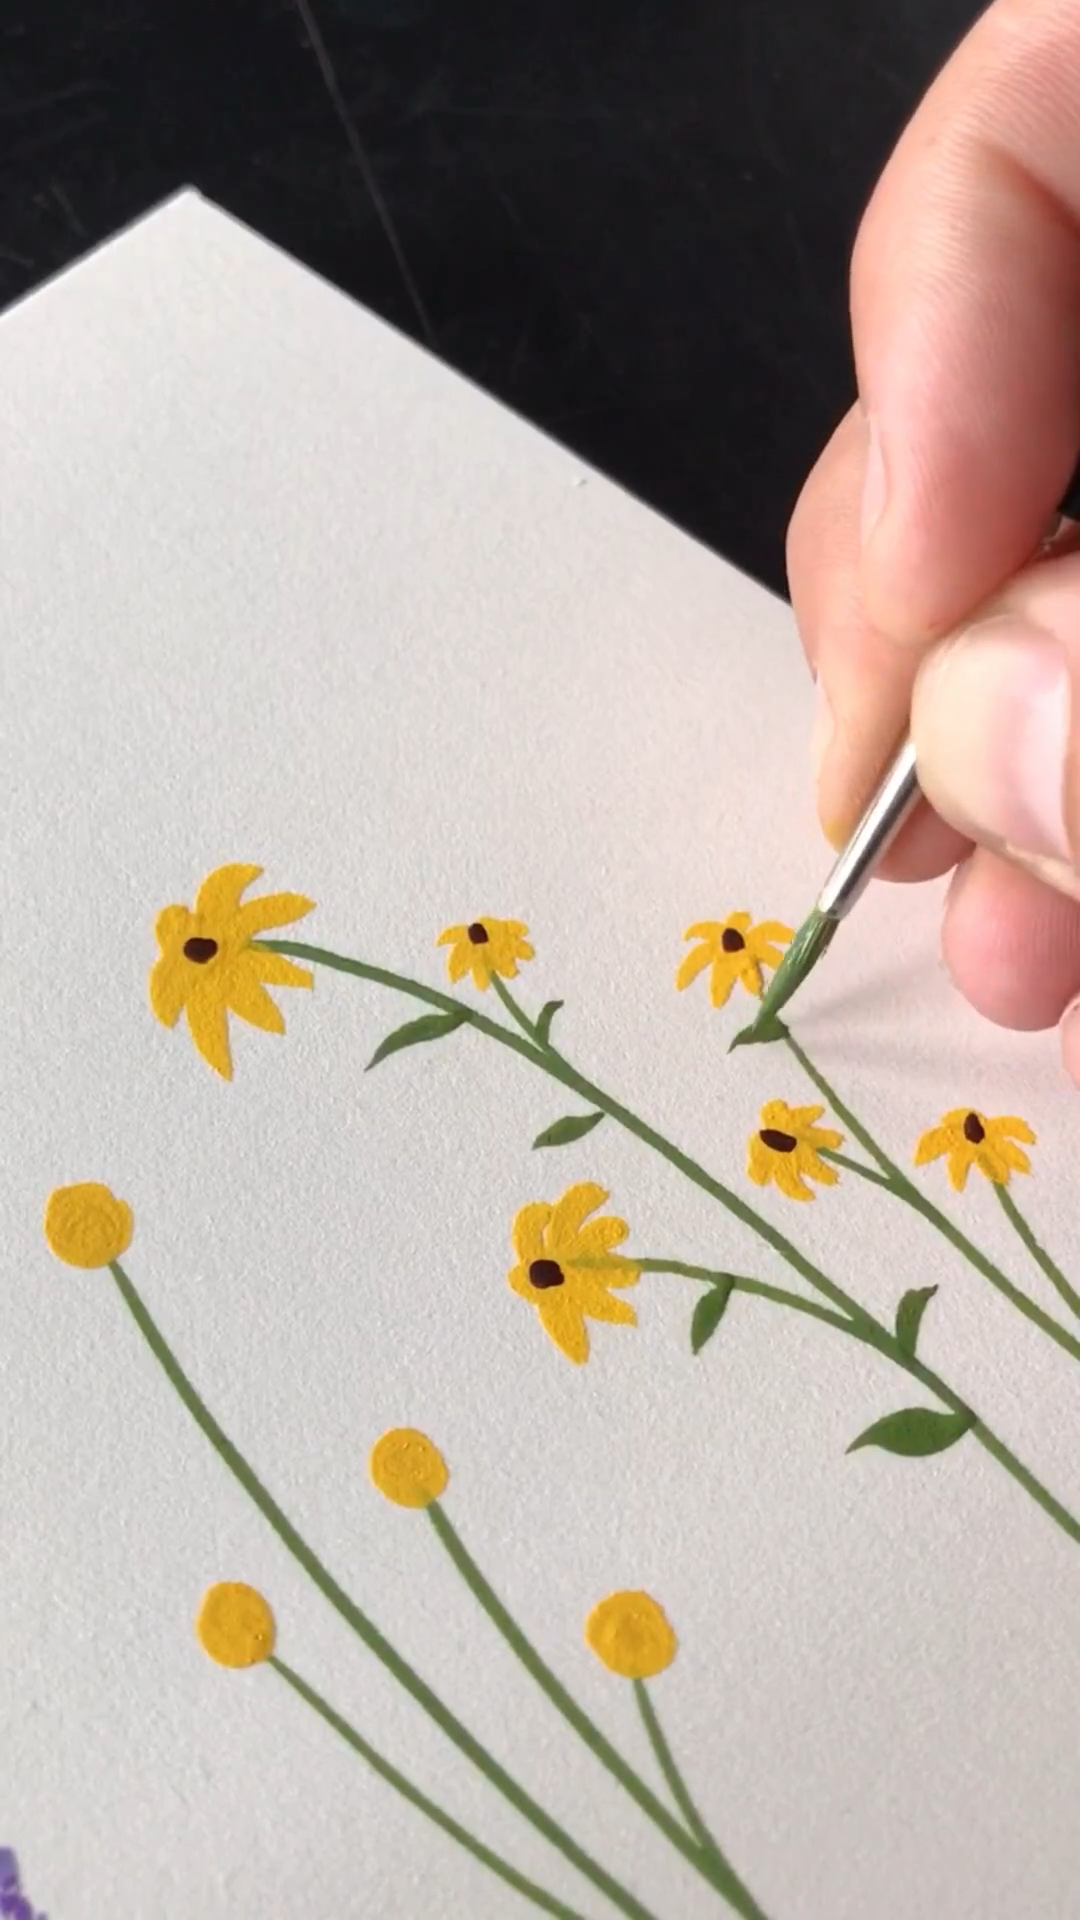 Little Wildflowers - Gouache Painting by Philip Boelter